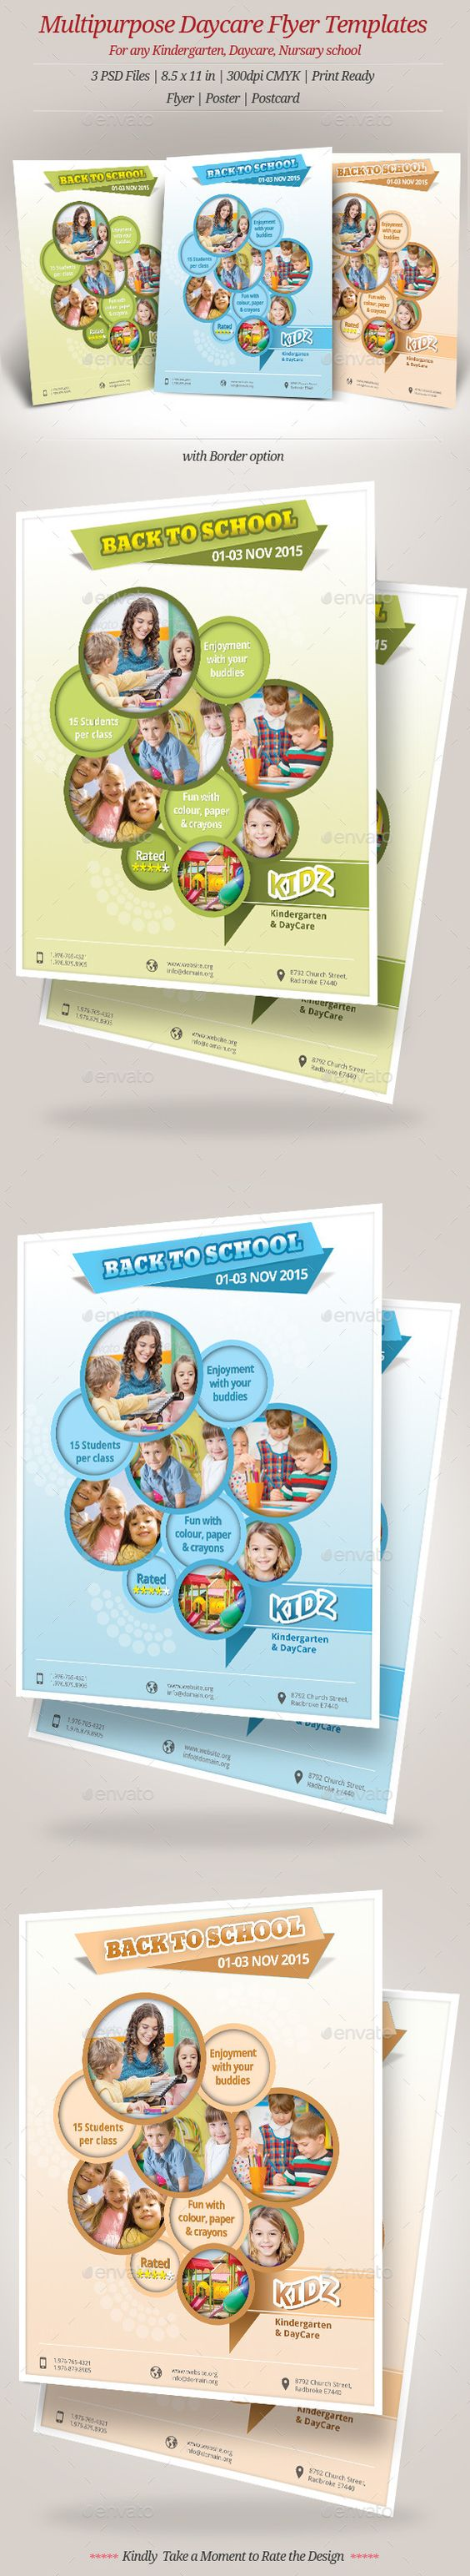 multipurpose daycare flyer templates daycares flyer template multipurpose daycare flyer templates for kindergarten daycare preschool that needs clean professional modern template design